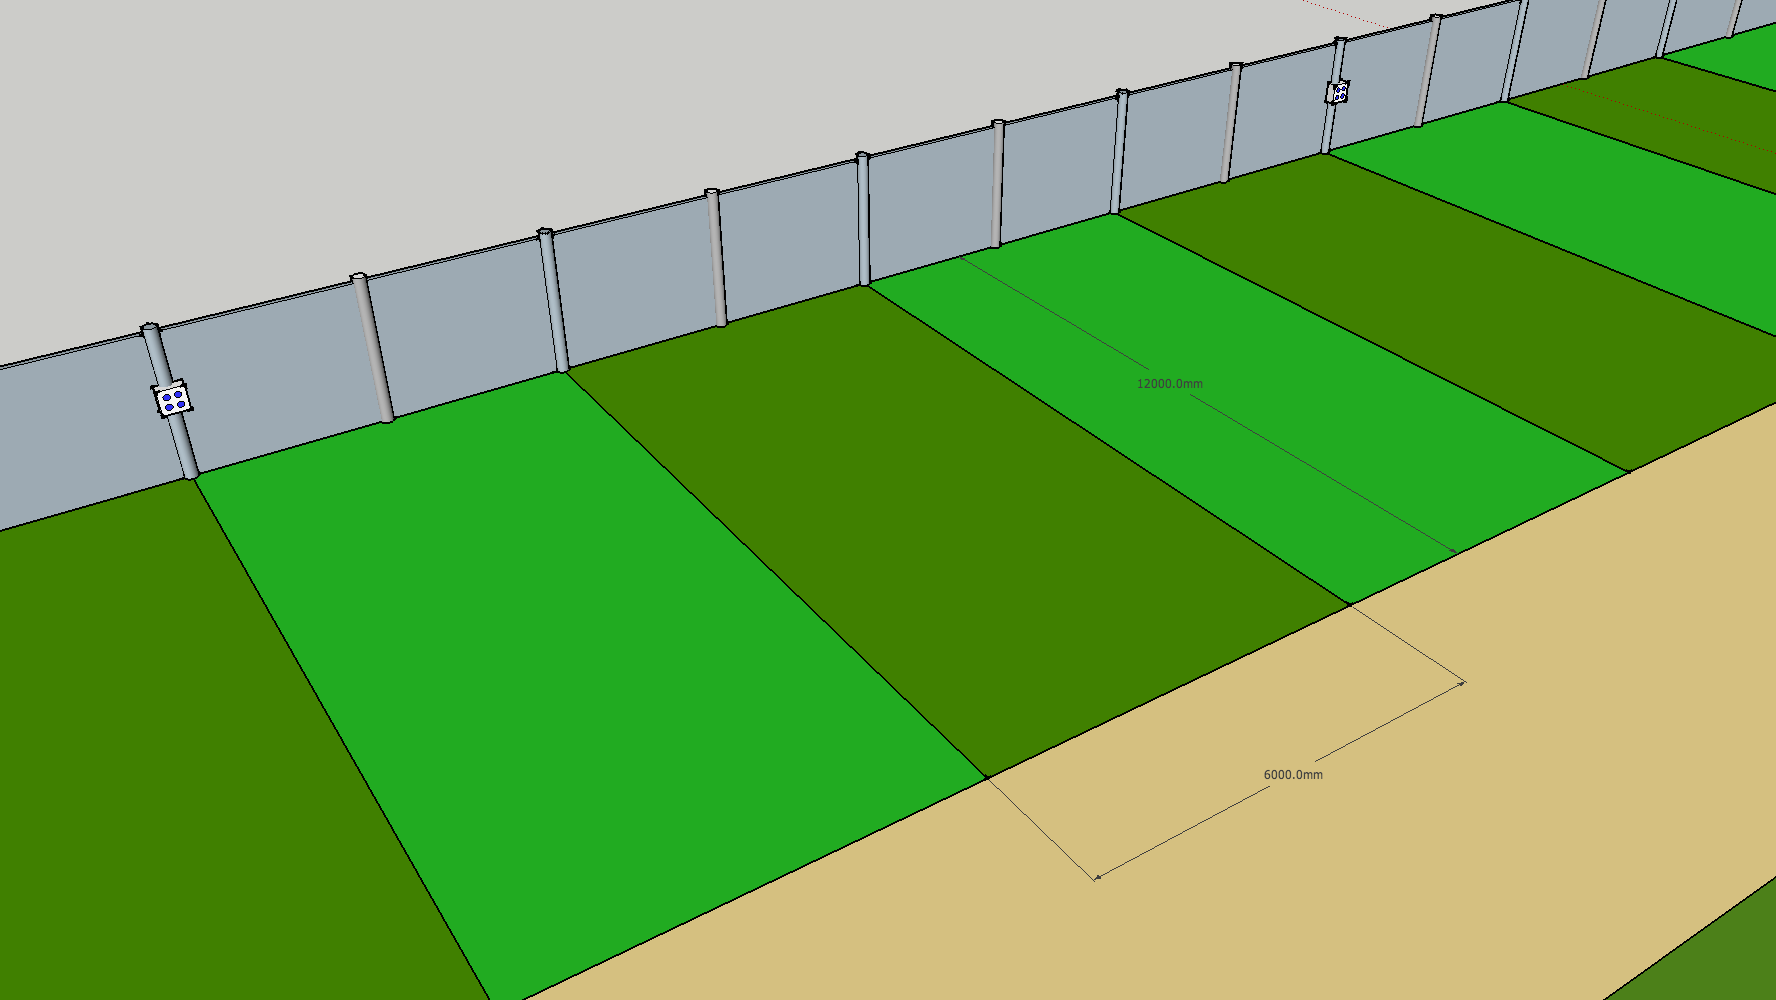 Large electric pitches are 6 x 12m  The electric box you need to connect to is a maximum of two pitches away Your 'camp' must fit within your 6 x 12m pitch